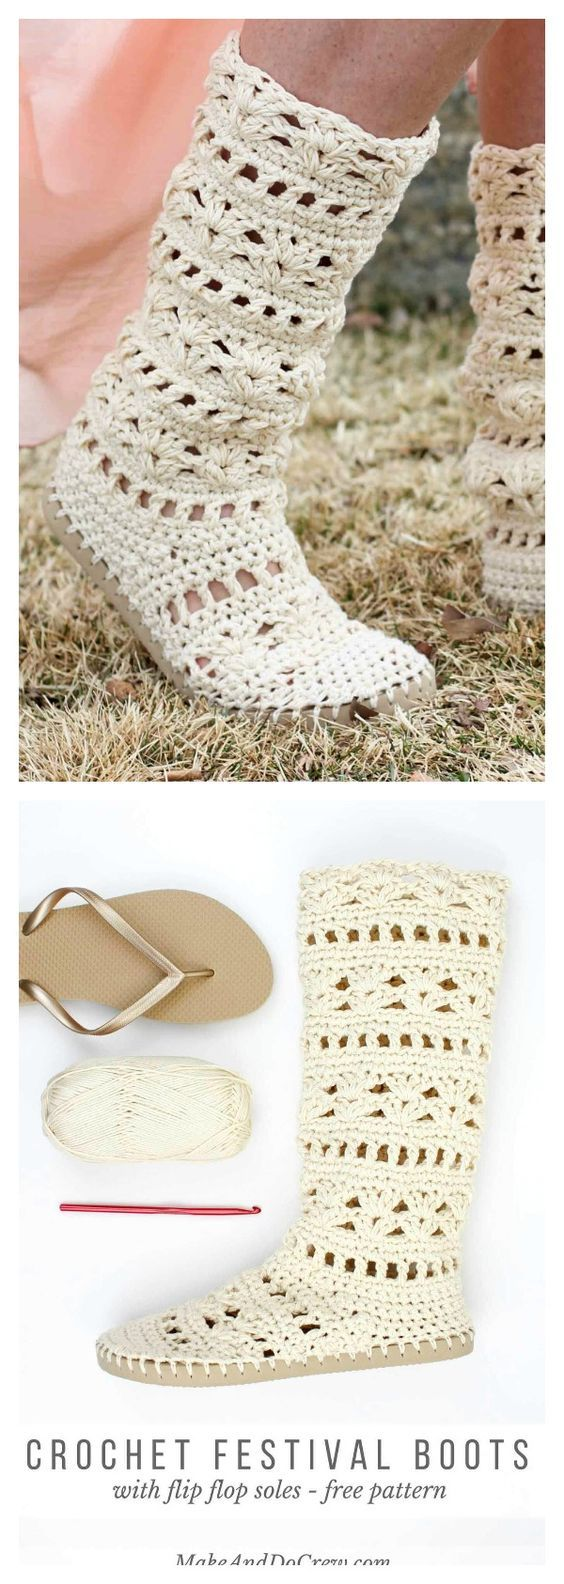 How to Crochet Slippers with Flip Flop Soles   Pantunflas, Tejido y ...